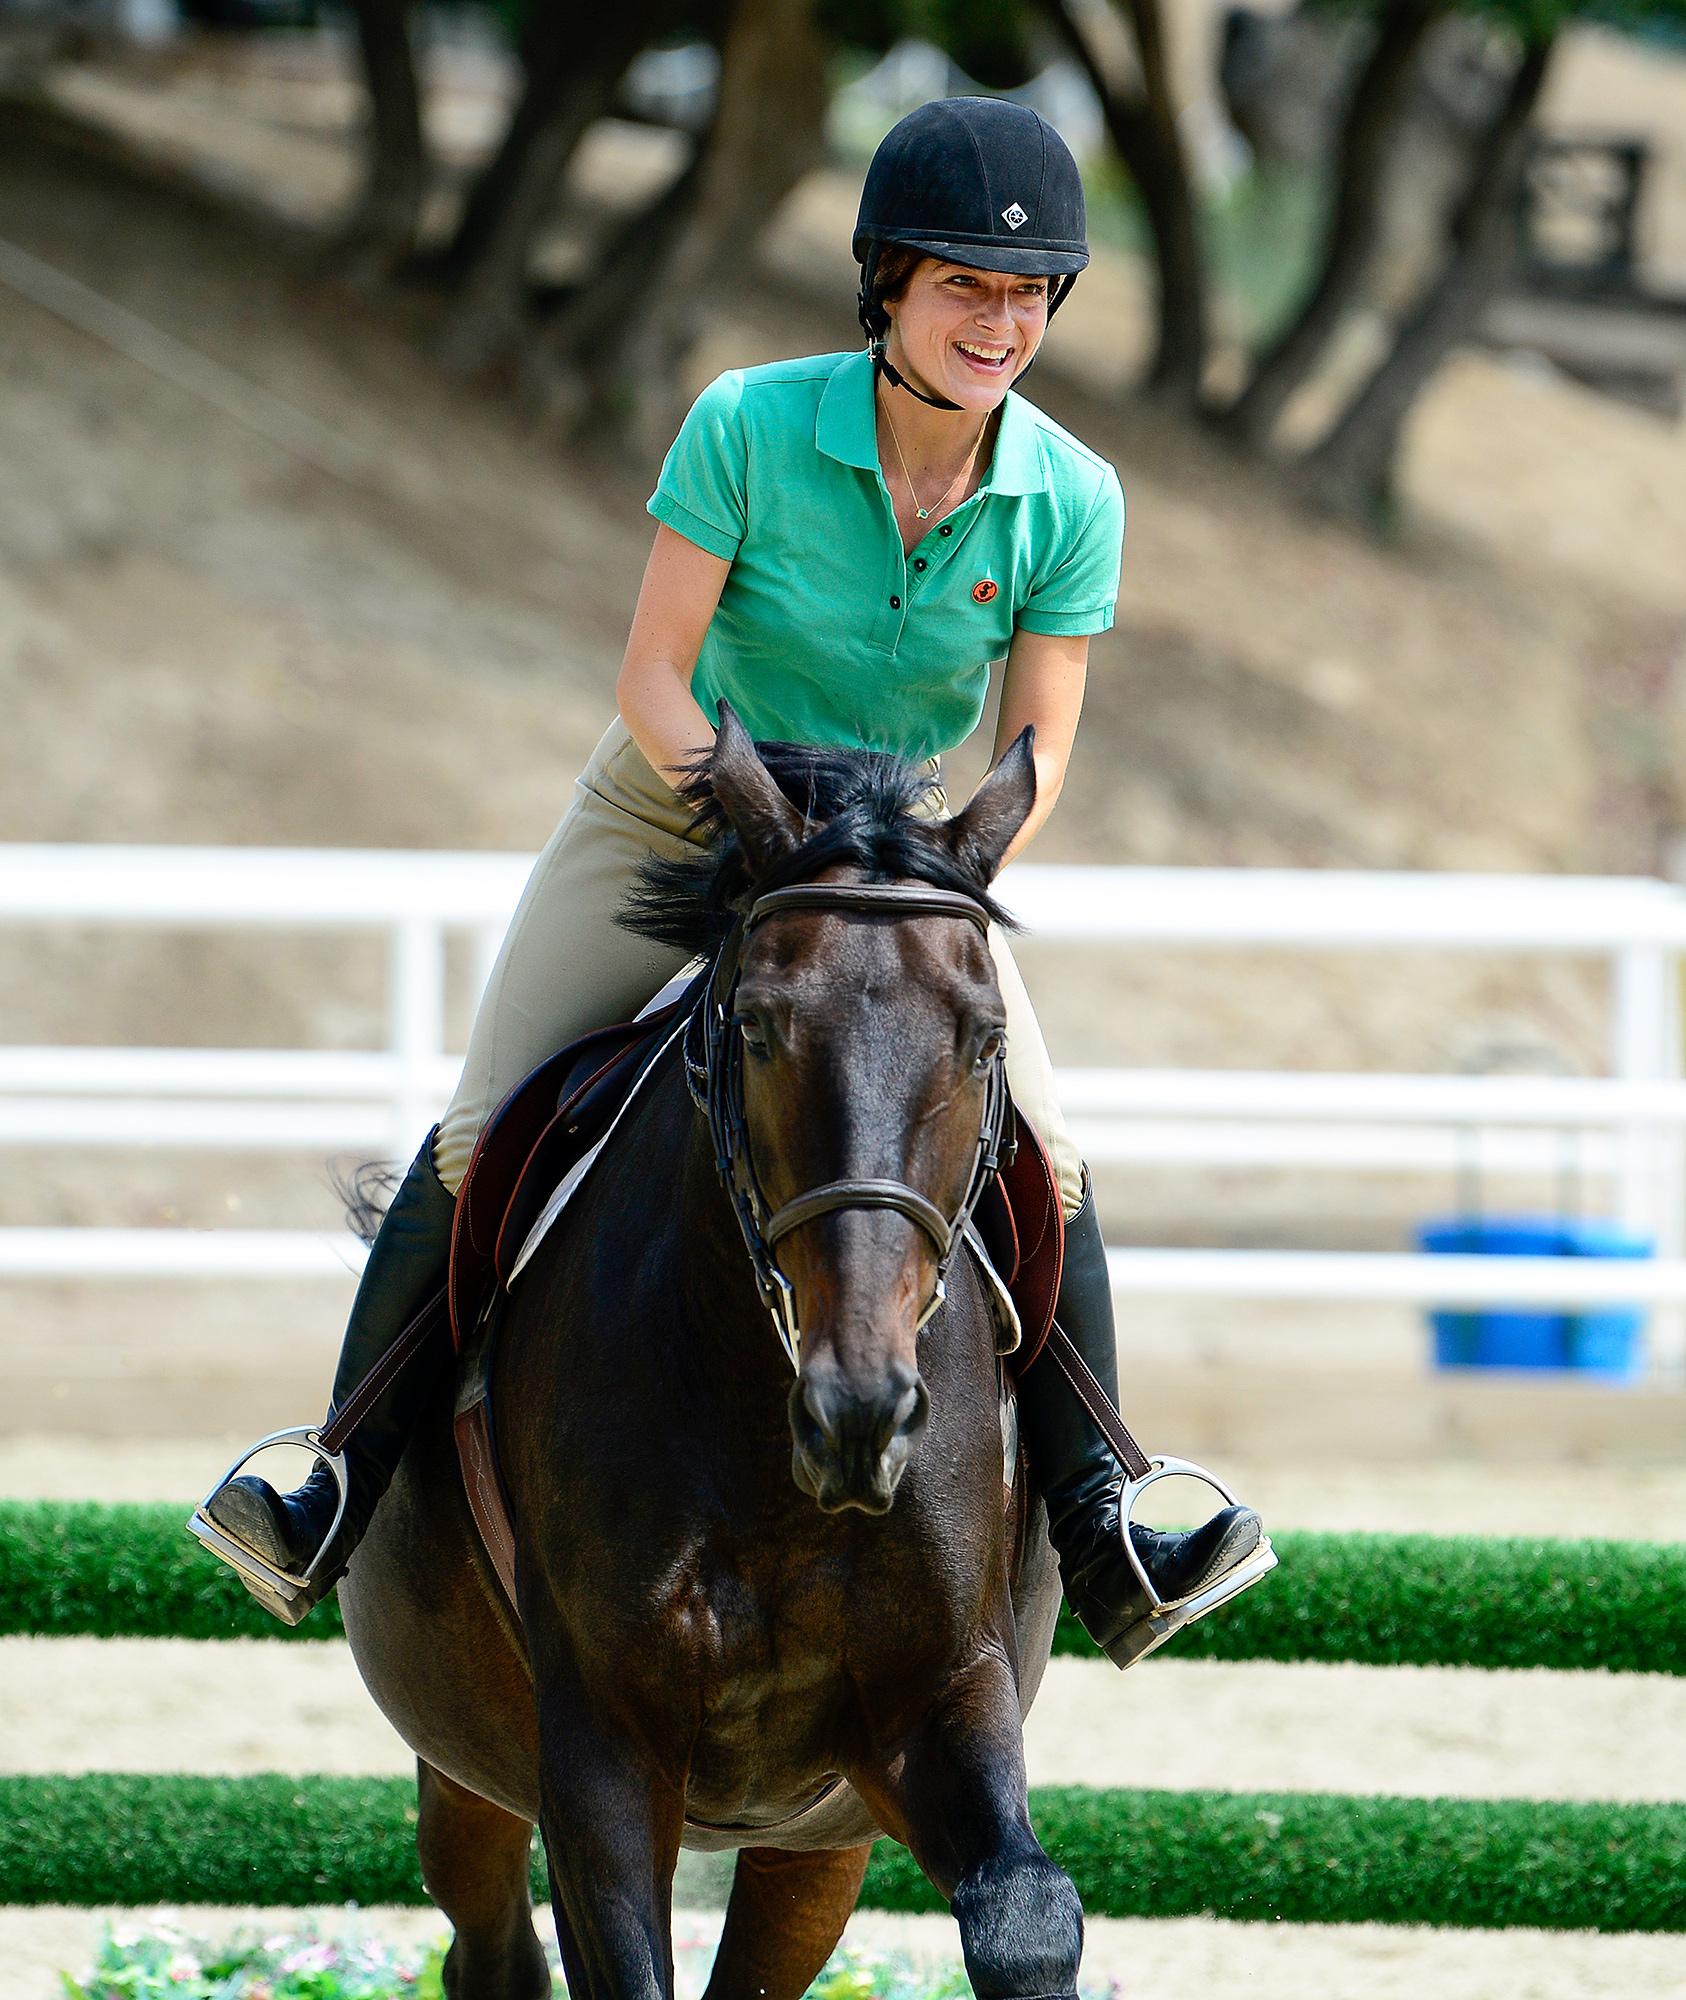 EXCLUSIVE: Selma Blair shows off her advanced equestrian skills on her horse Ivy!